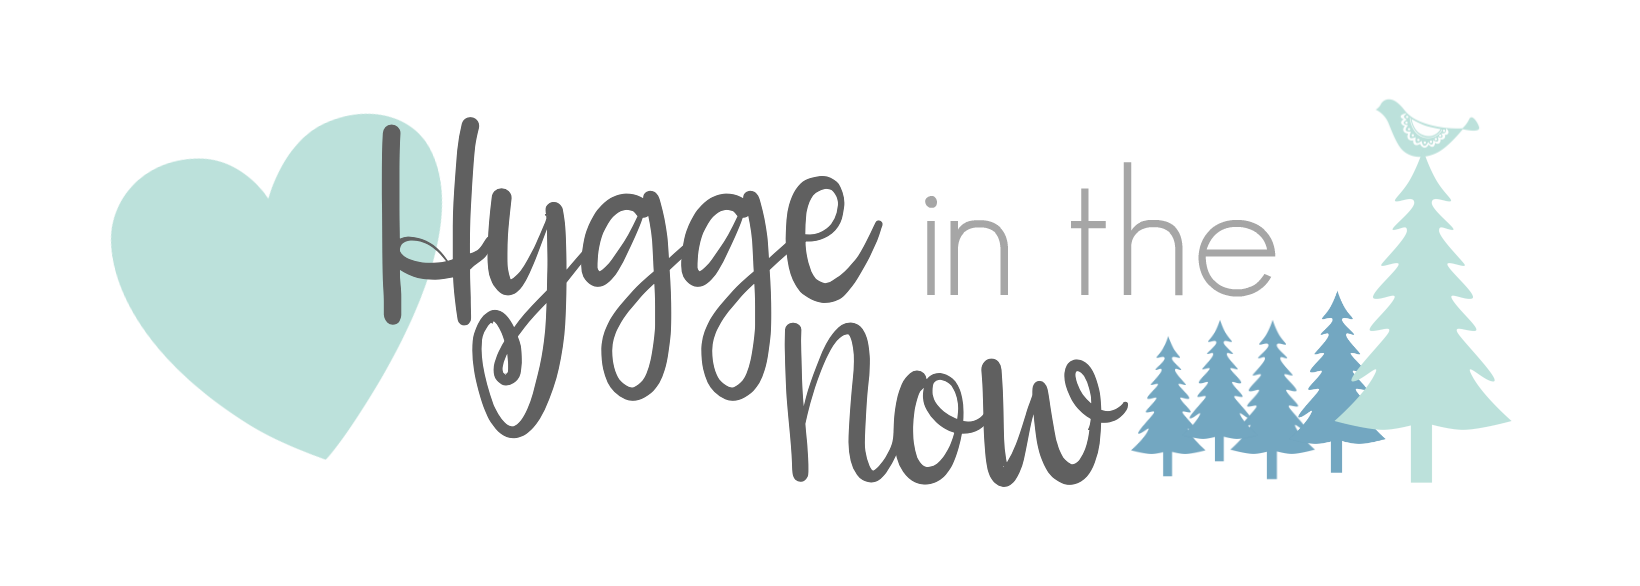 Hygge in the Now